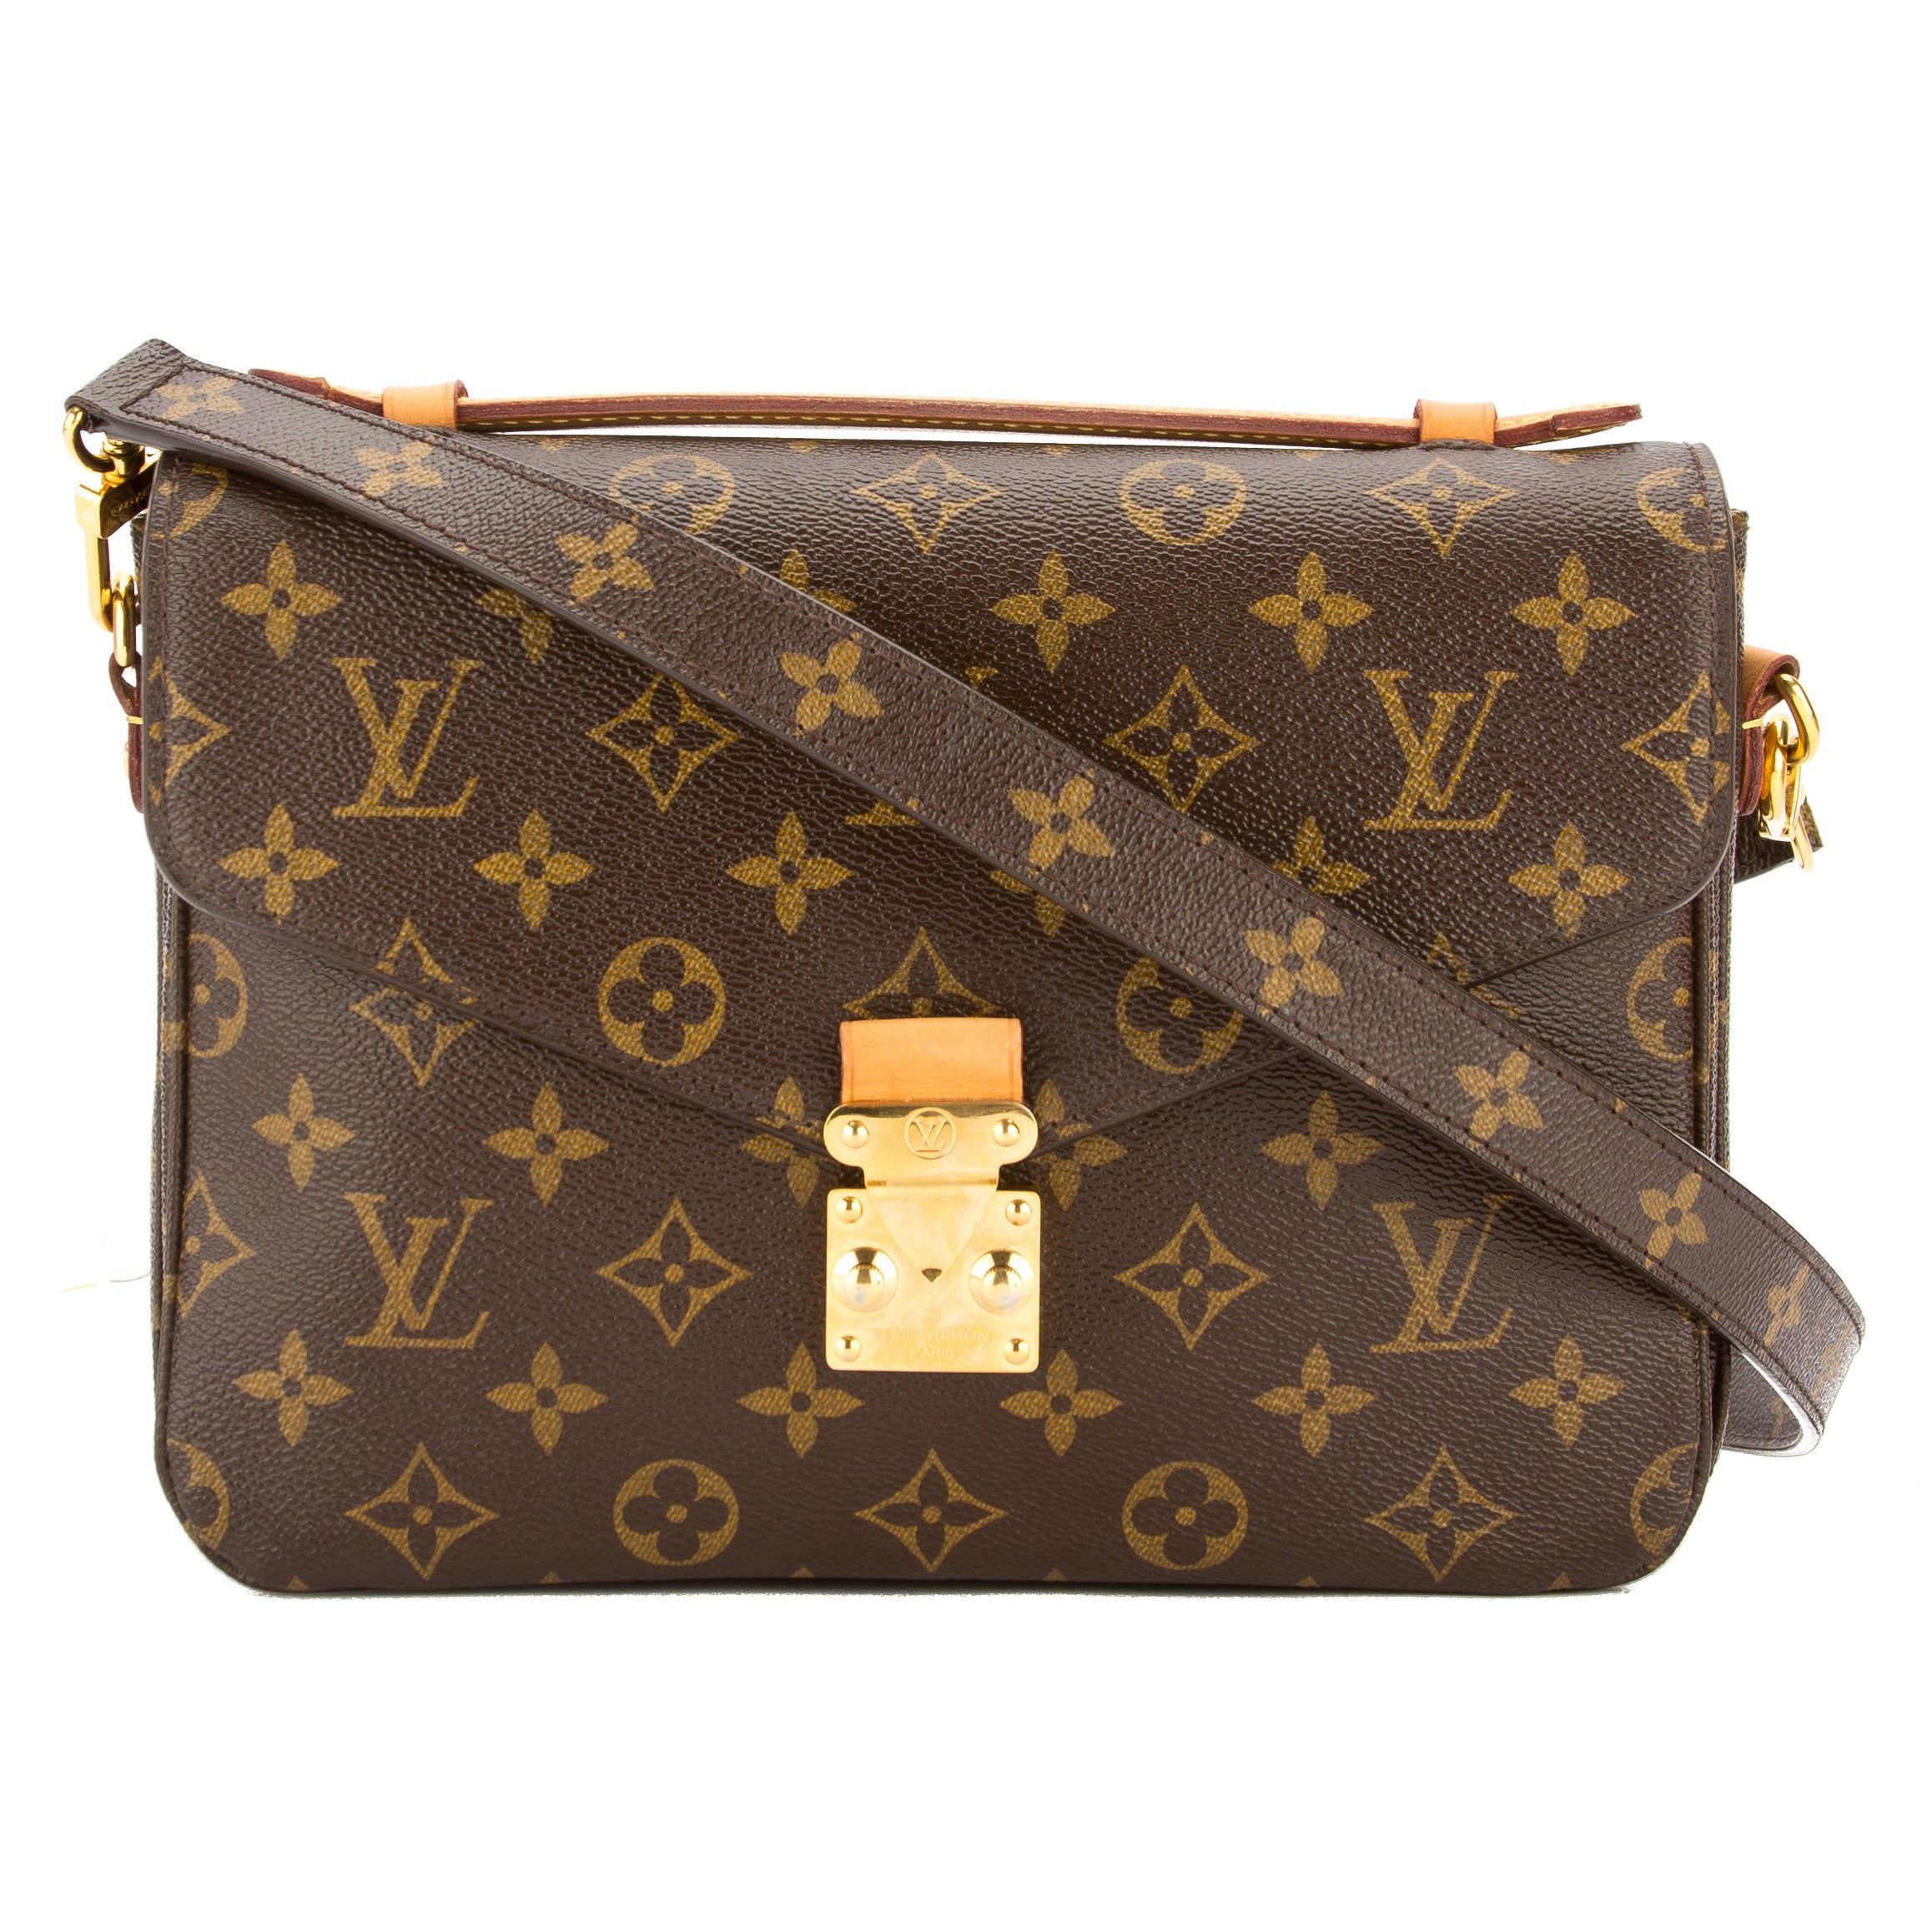 e7299f5e0f45 Louis Vuitton Monogram Canvas Pochette Metis Bag (Pre Owned ...